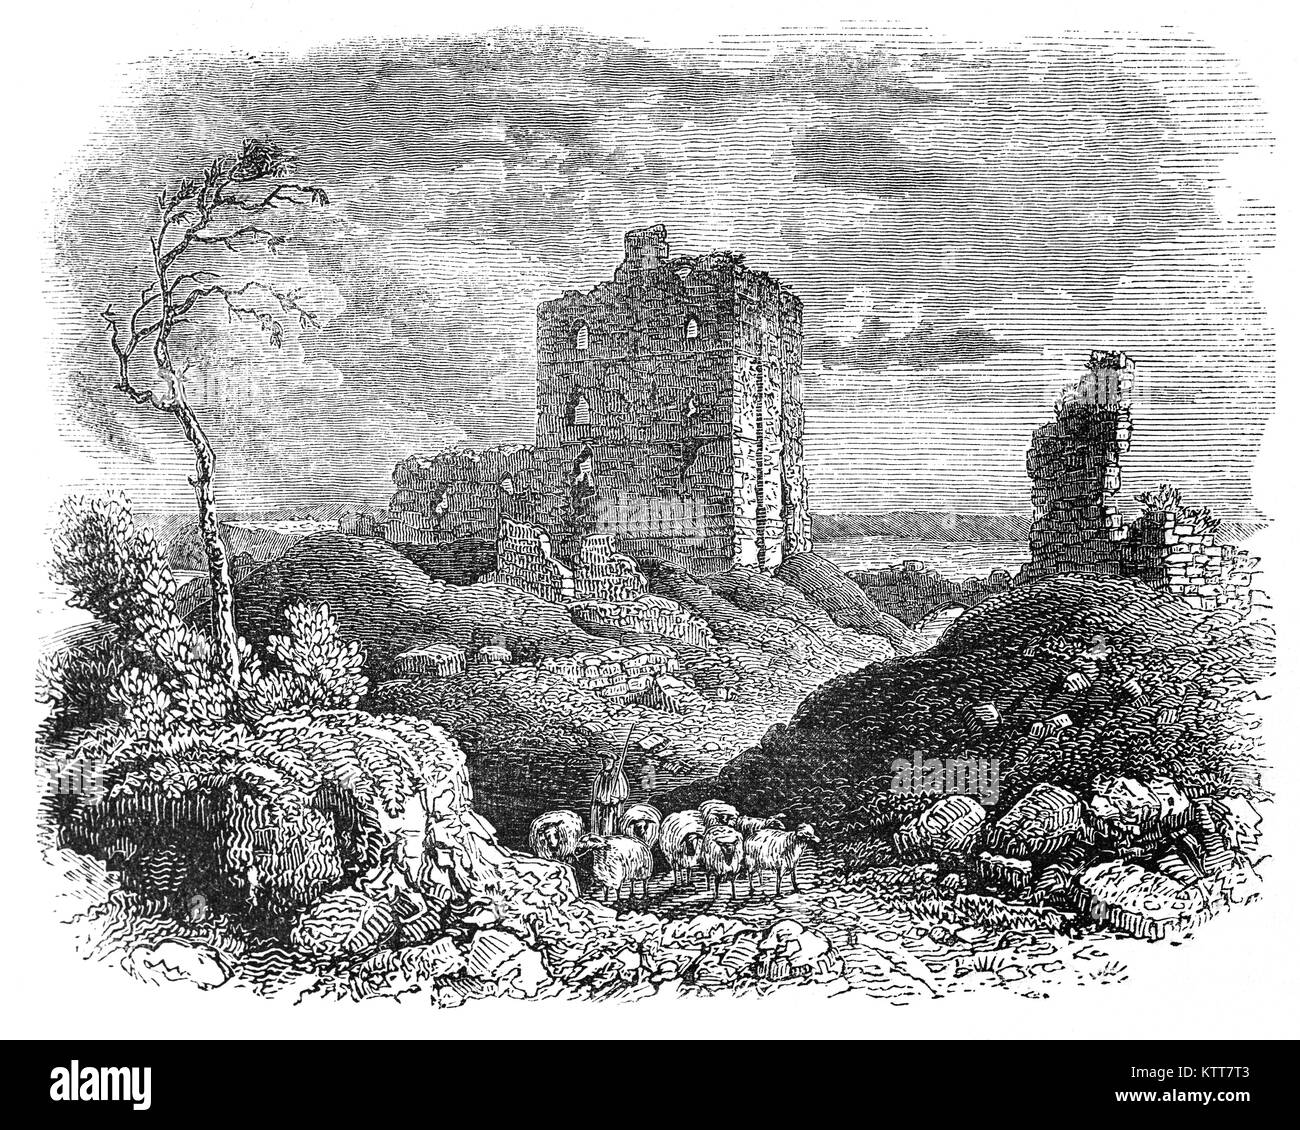 Norham Castle in Northumberland, overlooks the River Tweed, on the border between England and Scotland. In 1136 - Stock Image